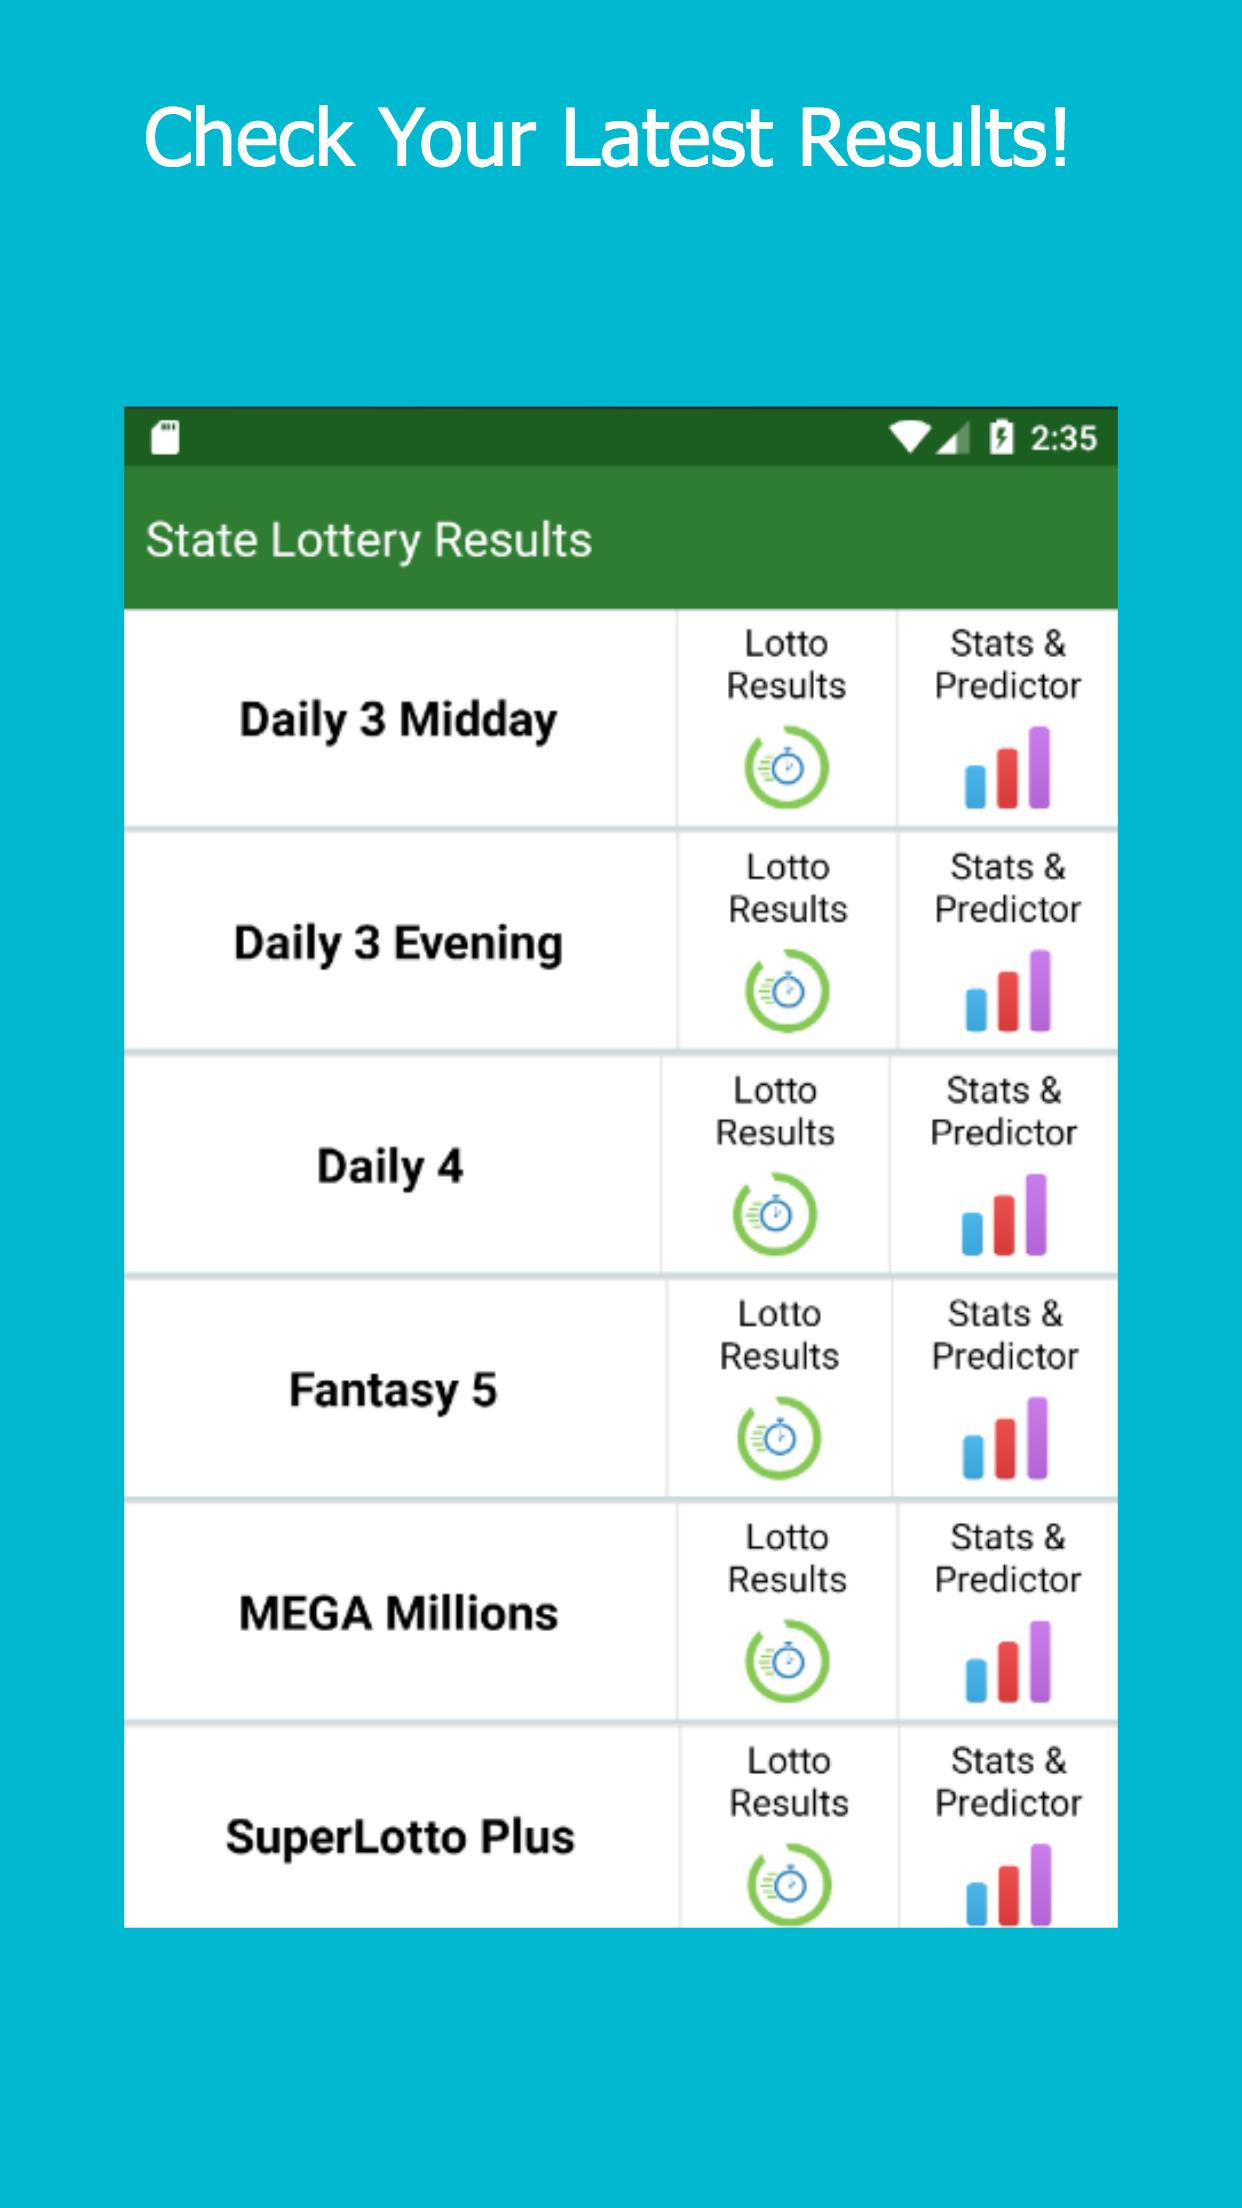 North Carolina Lottery Results For Android Apk Download